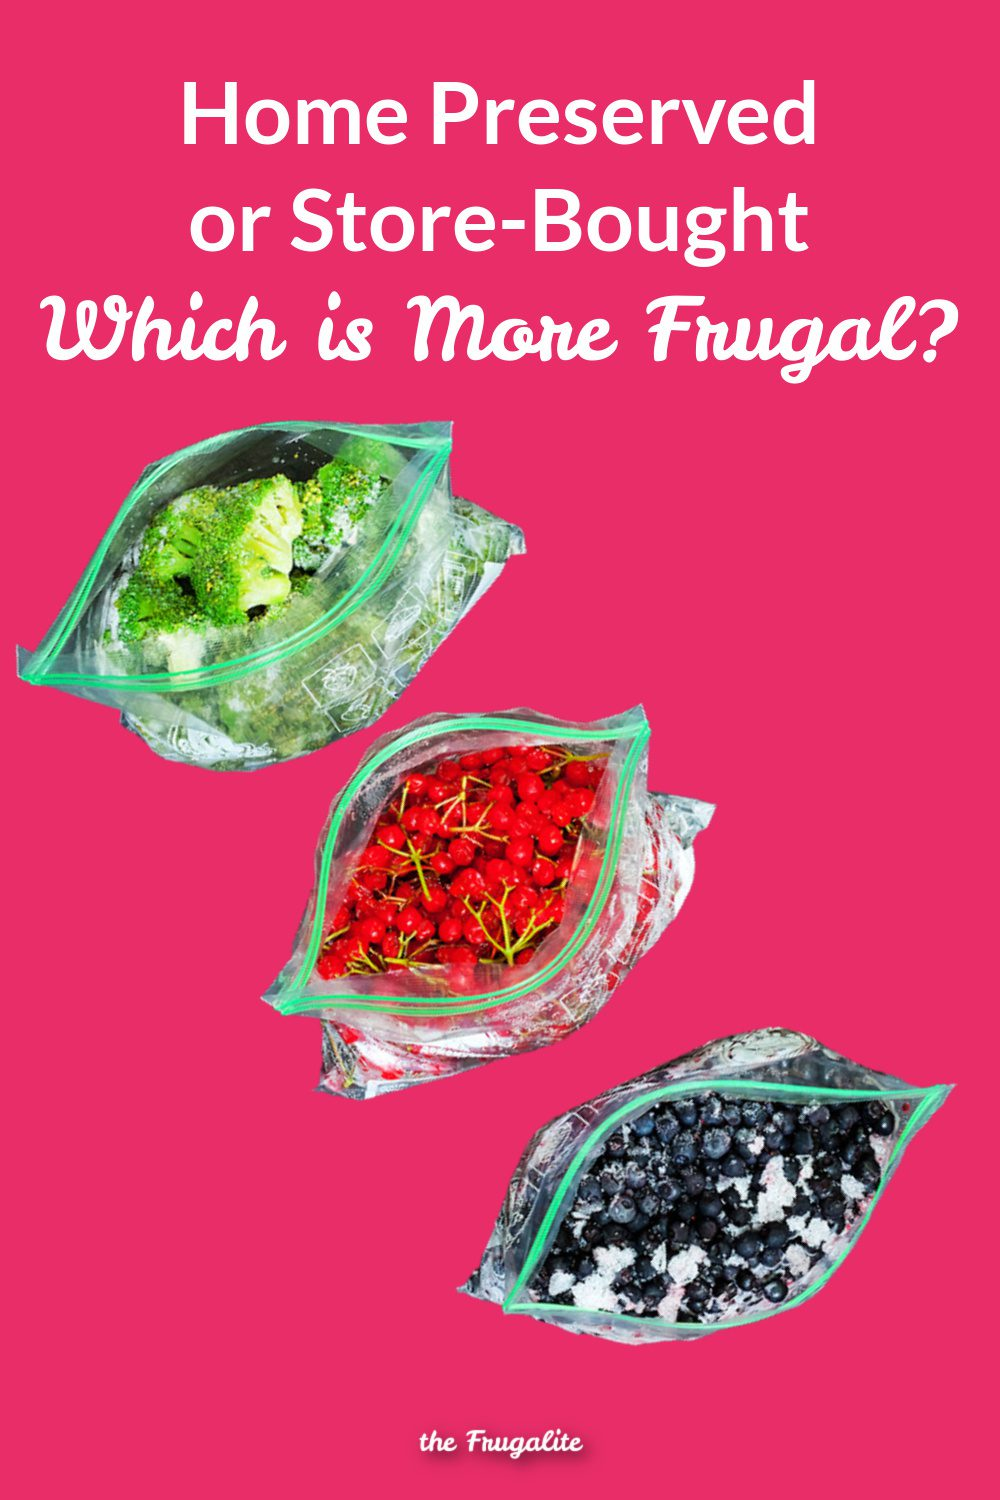 Home Preserved or Store Bought: Which is More Frugal?